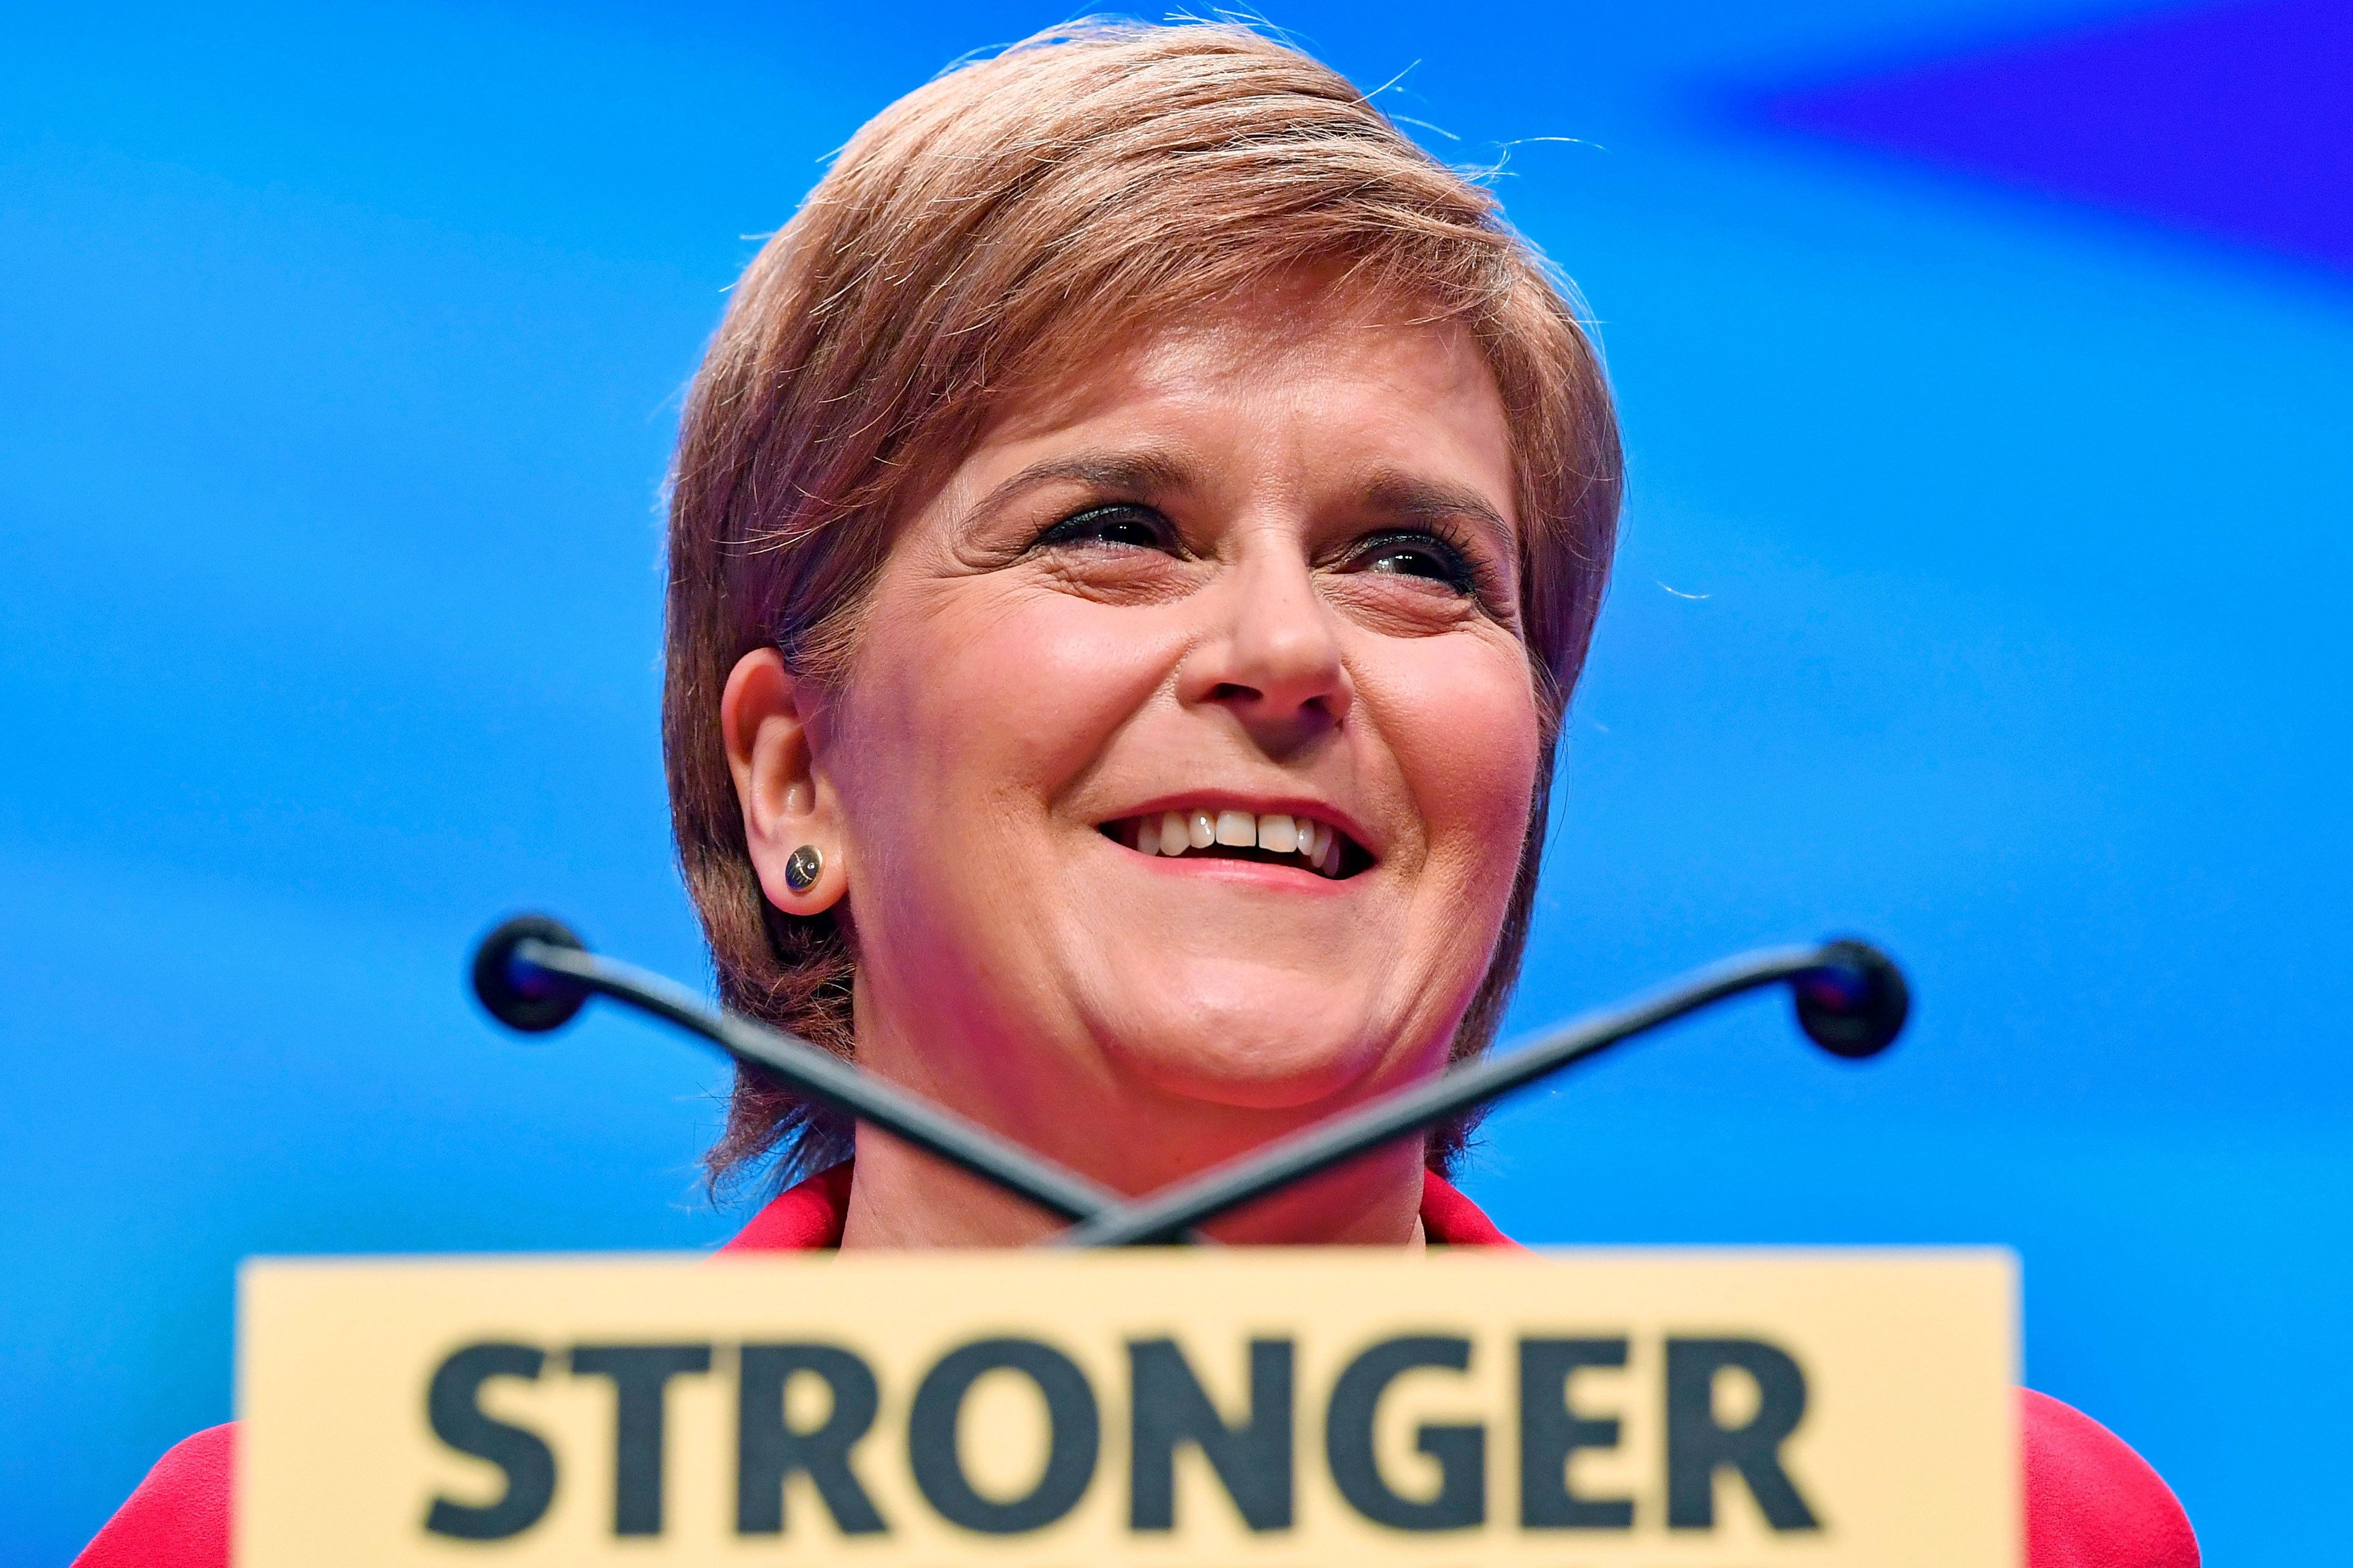 GLASGOW, SCOTLAND - OCTOBER 15:  First Minister and SNP leader Nicola Sturgeon addresses the Scottish National Party Conference 2016 on October 15, 2016 in Glasgow, Scotland. Nicola Sturgeon ended her party's conference with a speech about a 'new political era' in the UK, stating that Scotland is 'open for business' in the post-Brexit era while also speaking about domestic policy priorities.  (Photo by Jeff J Mitchell/Getty Images)